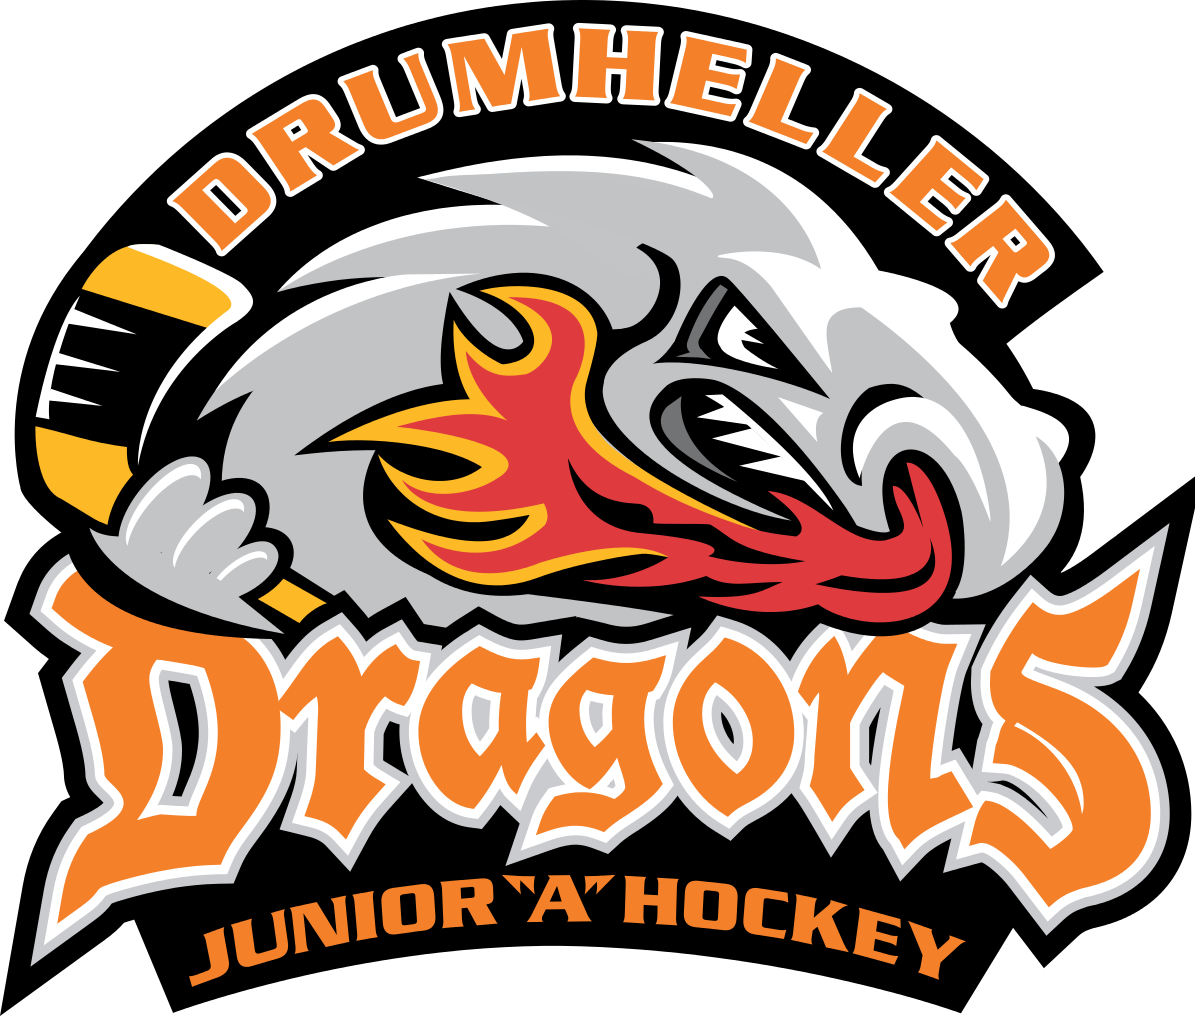 The Drumheller Dragons AJHL hockey team commit to another season of play with their schedule becoming available in